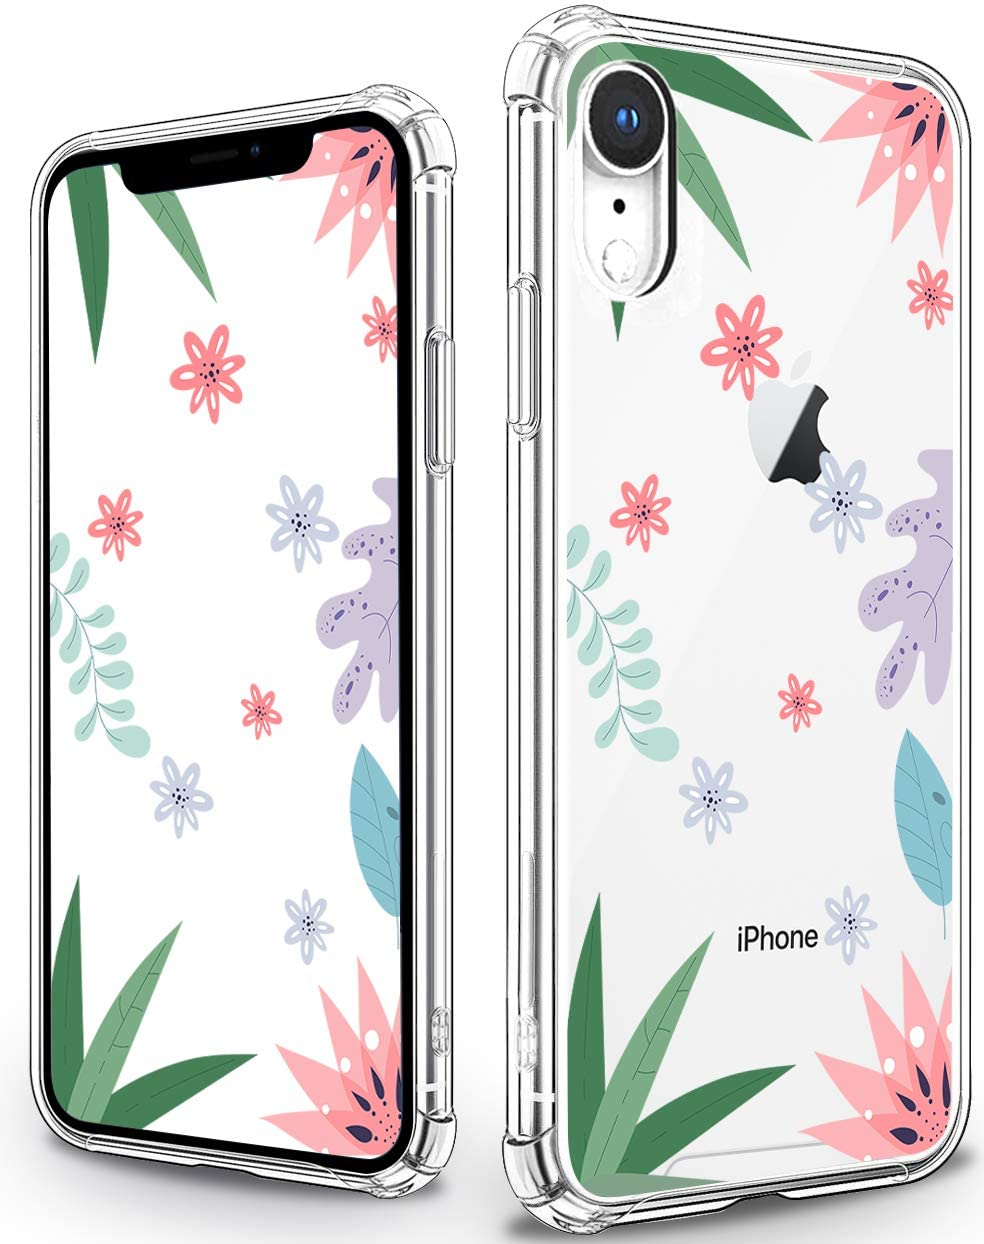 YESPURE Flower iPhone XR Case, Cute Floral Girls and Women Back Cover, Shockproof Hard PC Back Case with Slim TPU Bumper Wild Flower Phone Case for iPhone XR - Cute Floral